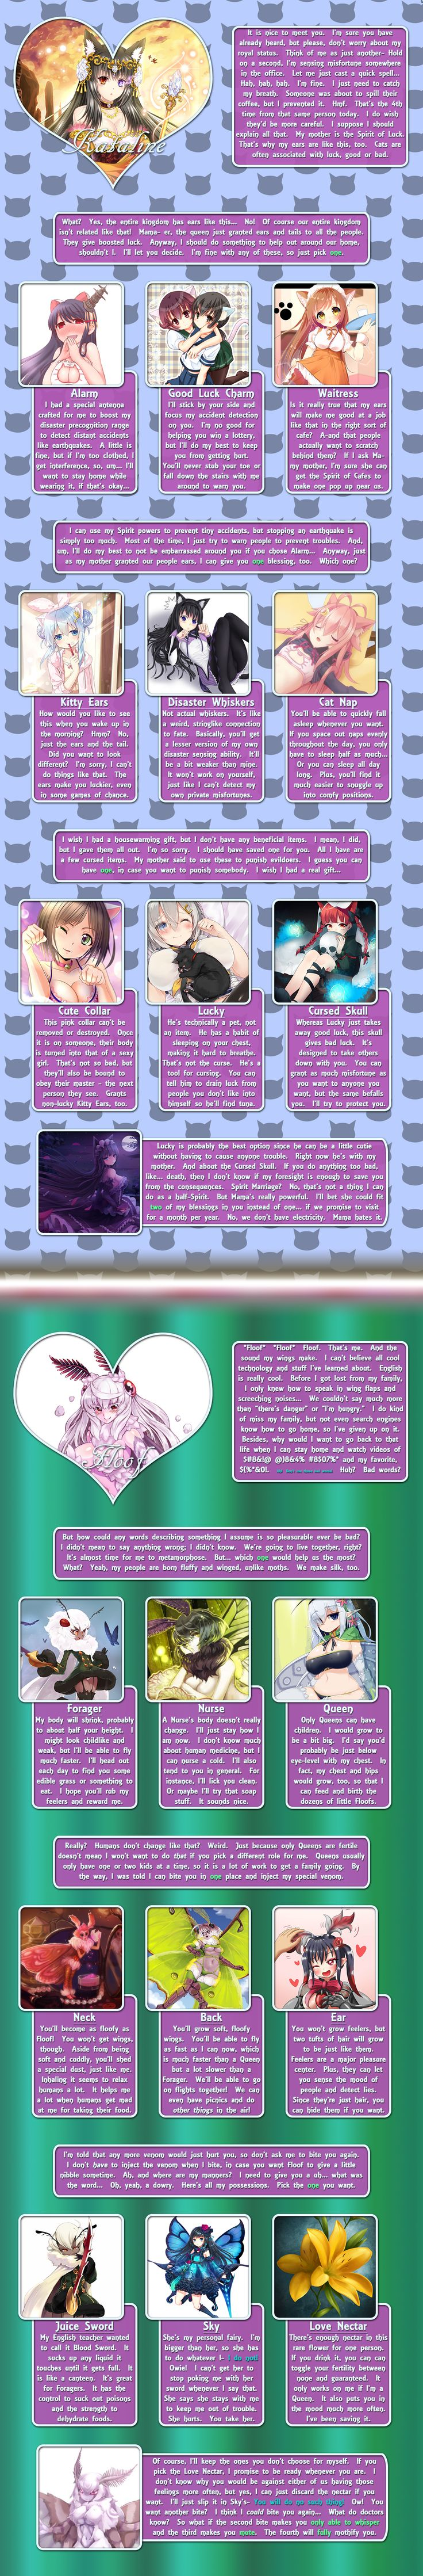 Pin By James Cody Vanderheyden On Things  Cyoa, Anime -1001